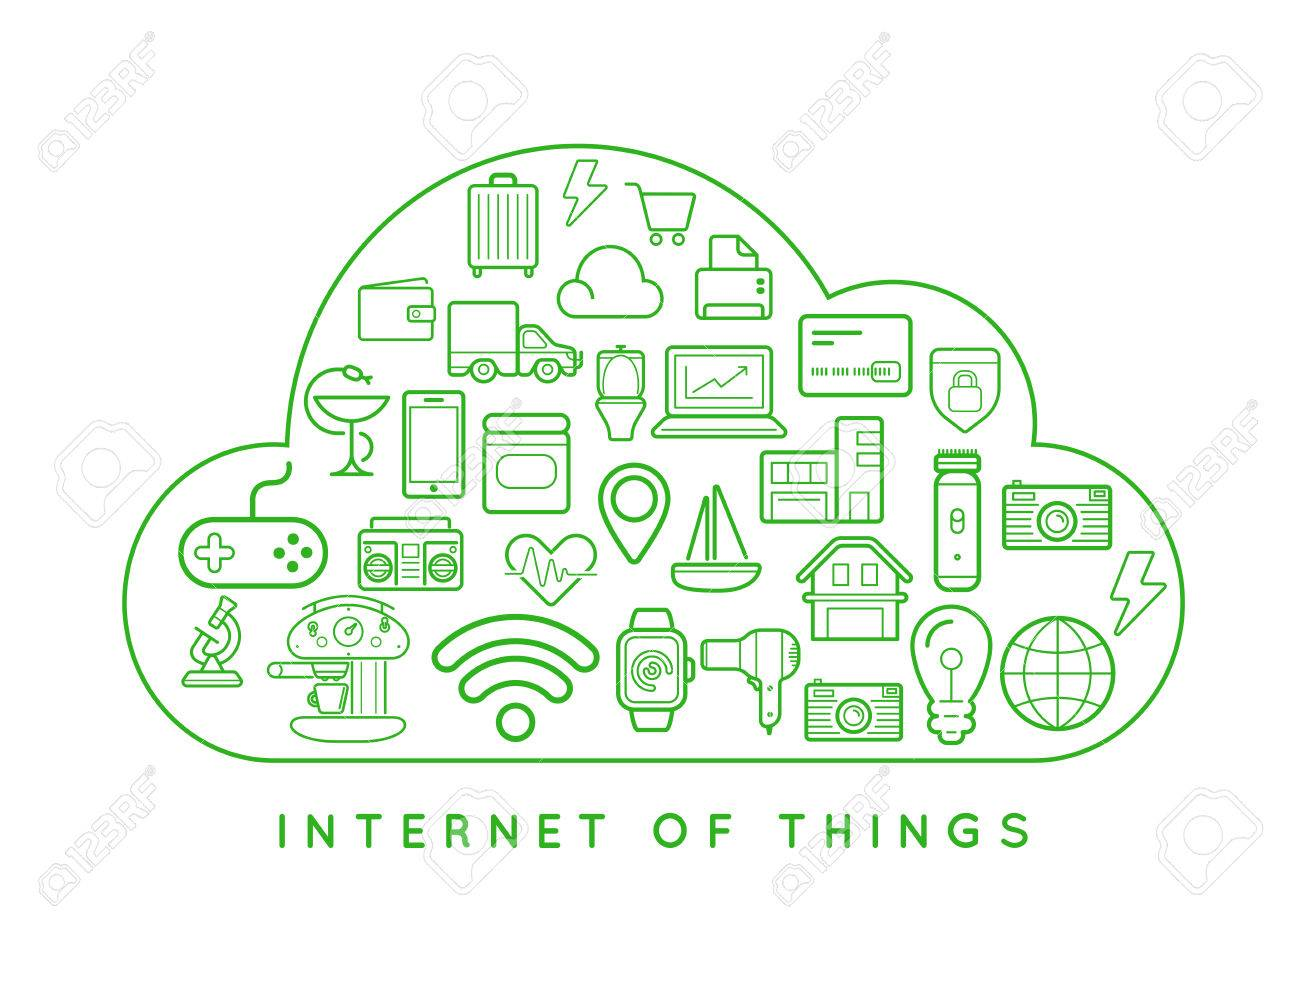 Cloud IOT Internet of Things Smart Home Vector Quality Design with Icons - 77909889